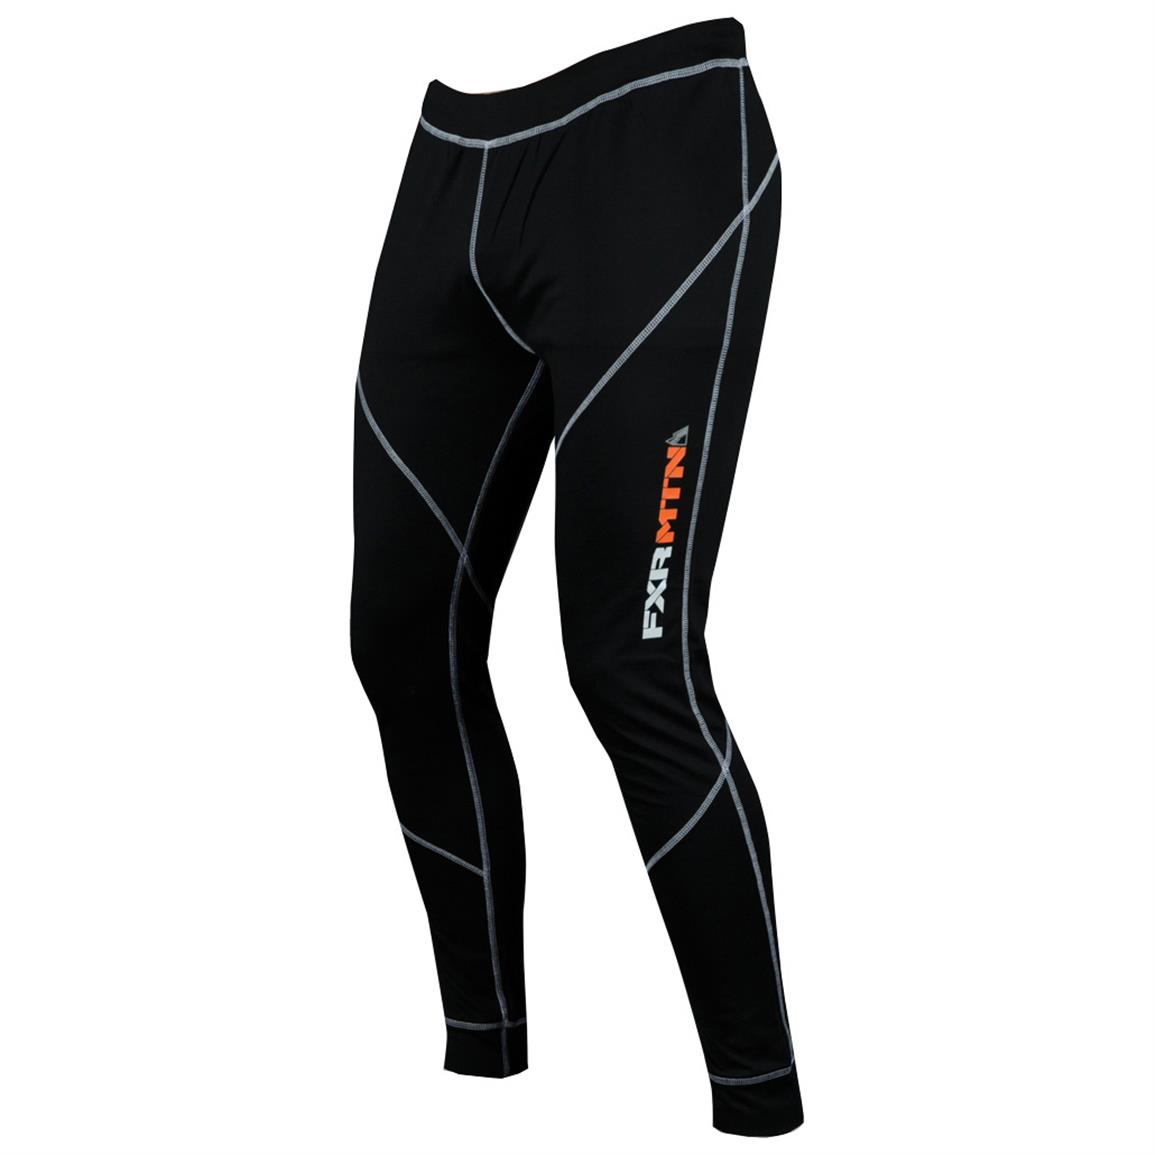 Men's FXR® Vapour 20% Merino Blend Base Layer Bottom